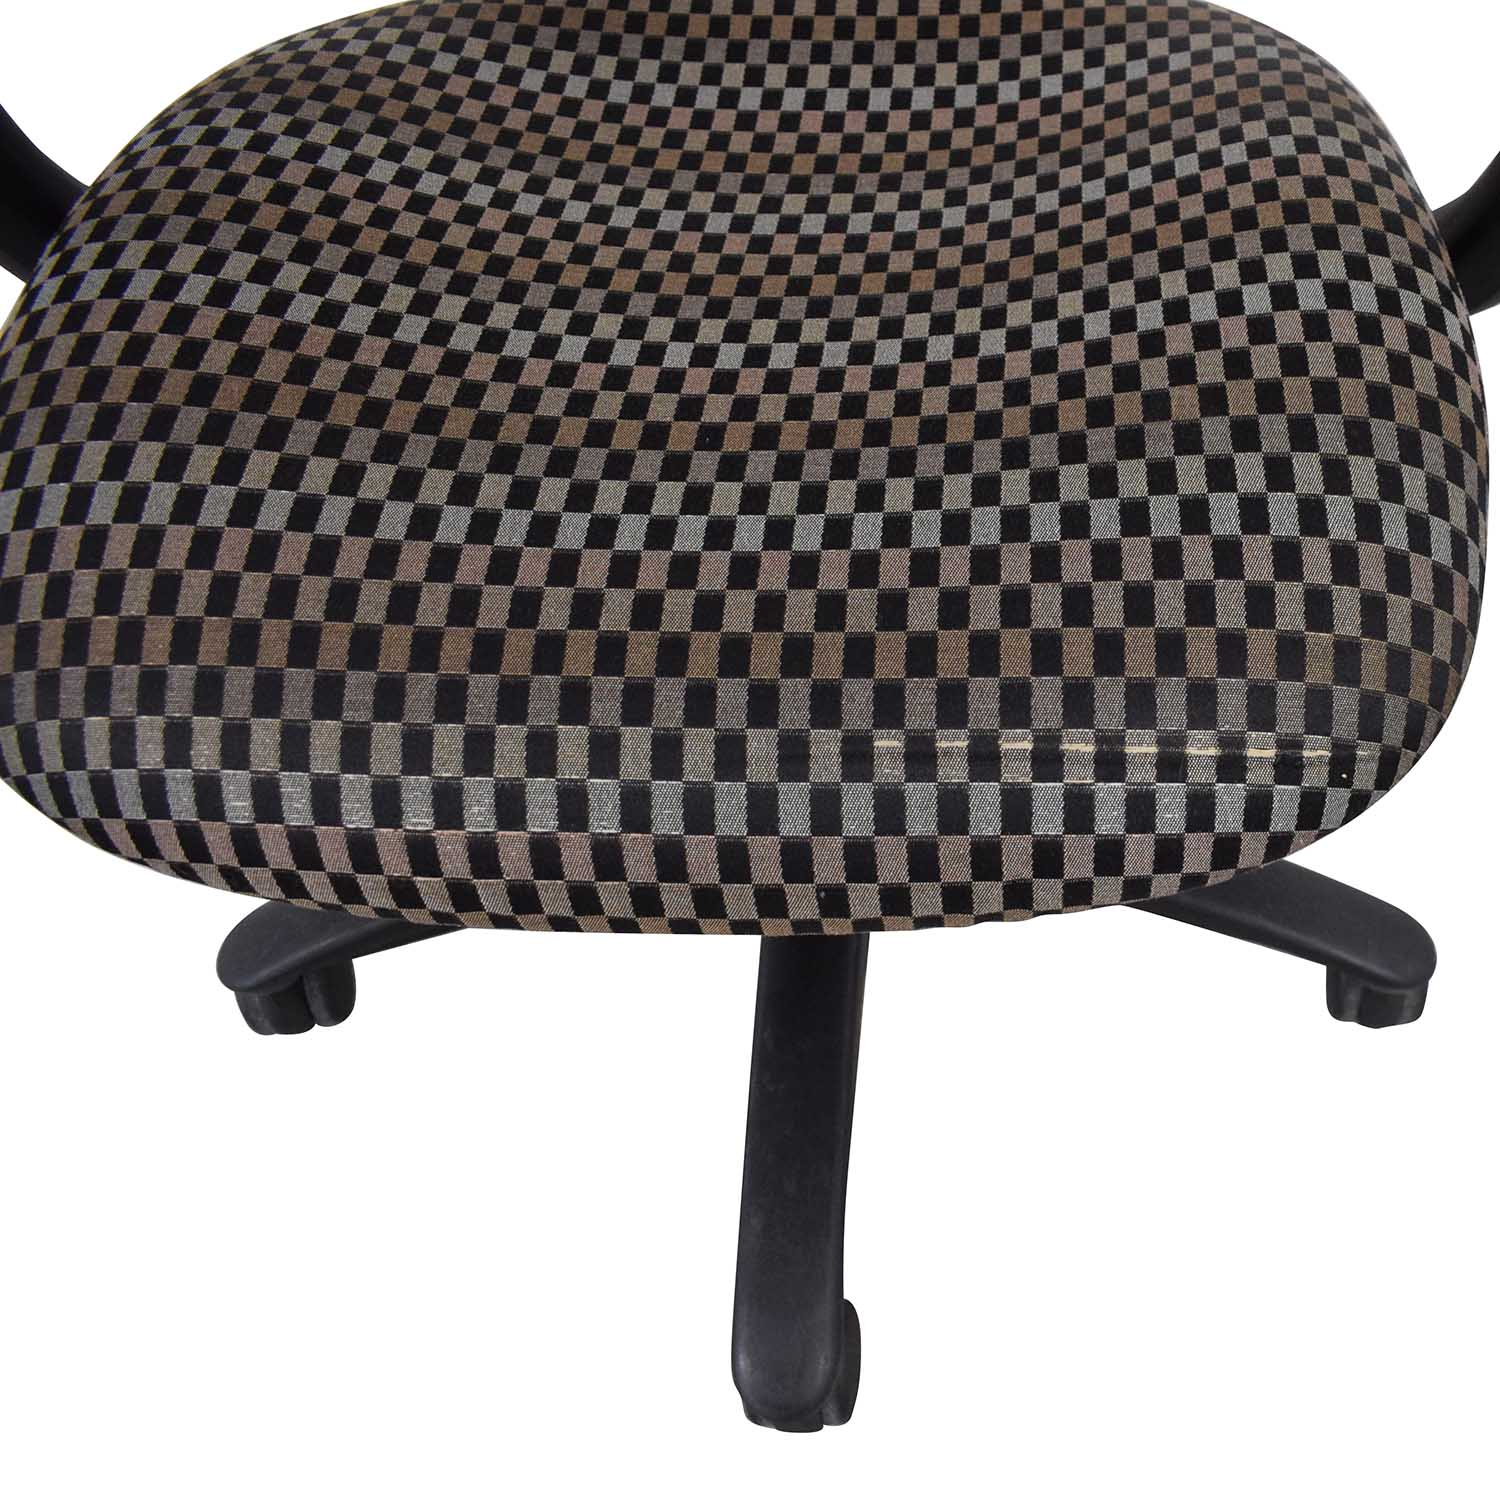 Haworth Haworth Improv Office Desk Chairs